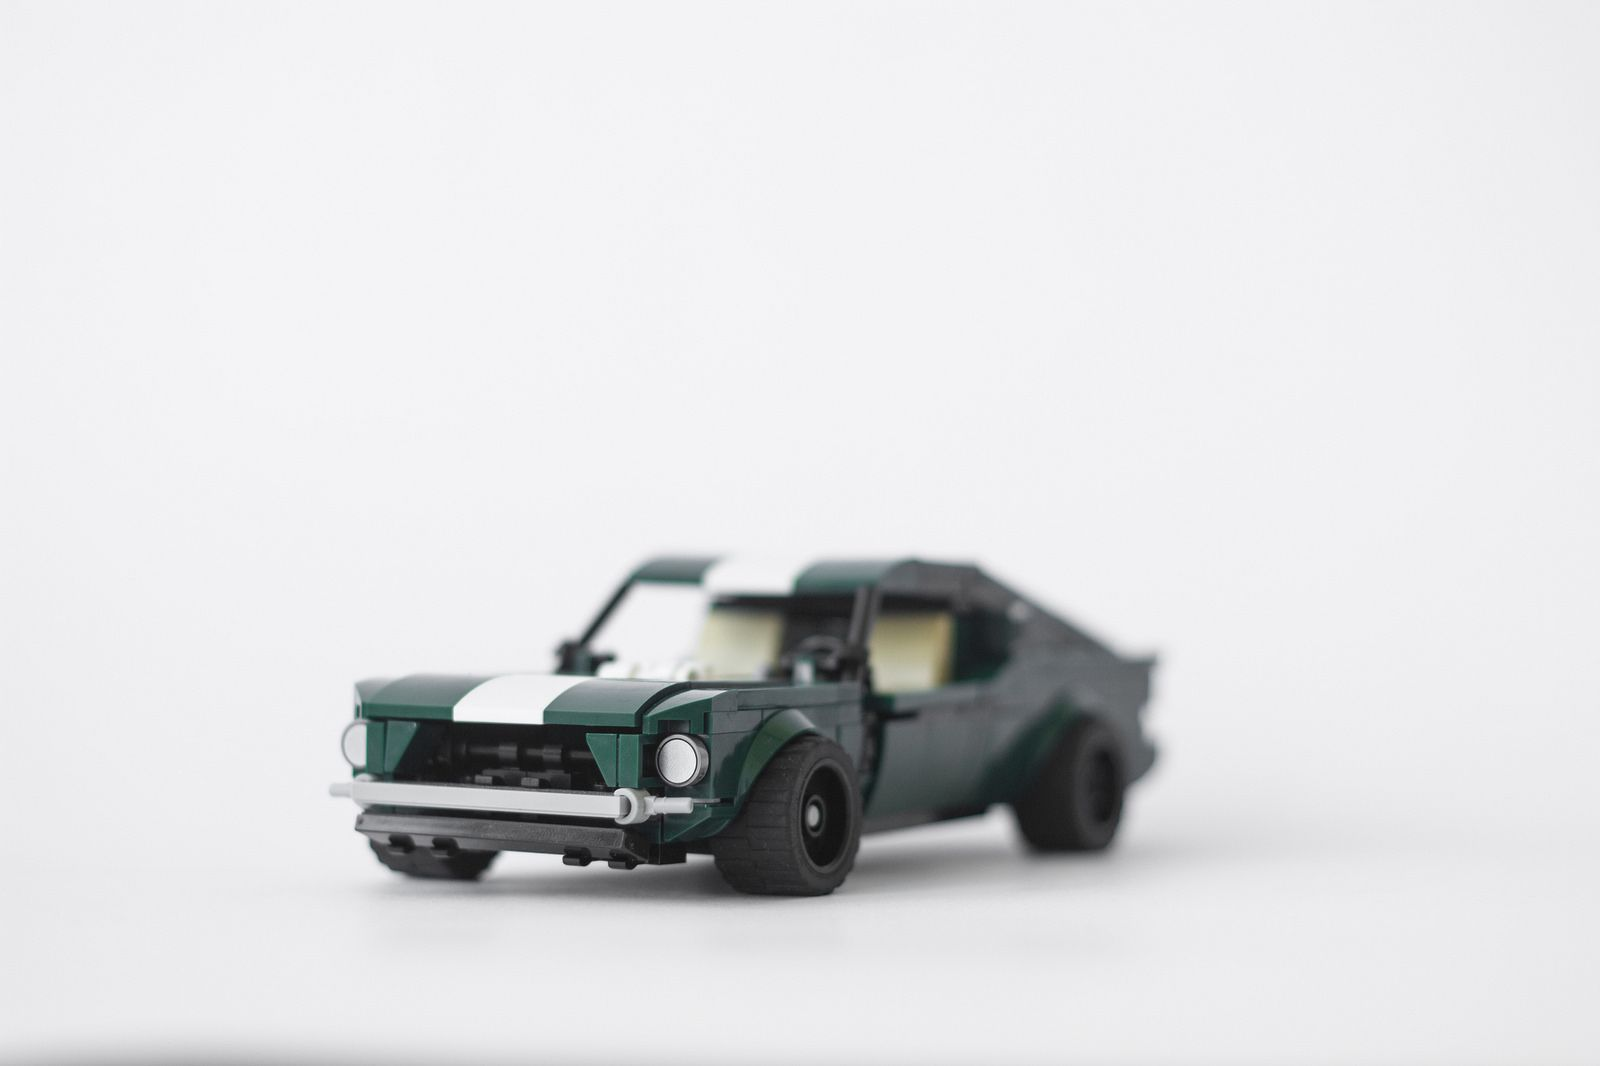 Ford mustang fastback 1967 rb26dett swapped by simonprzepiorka